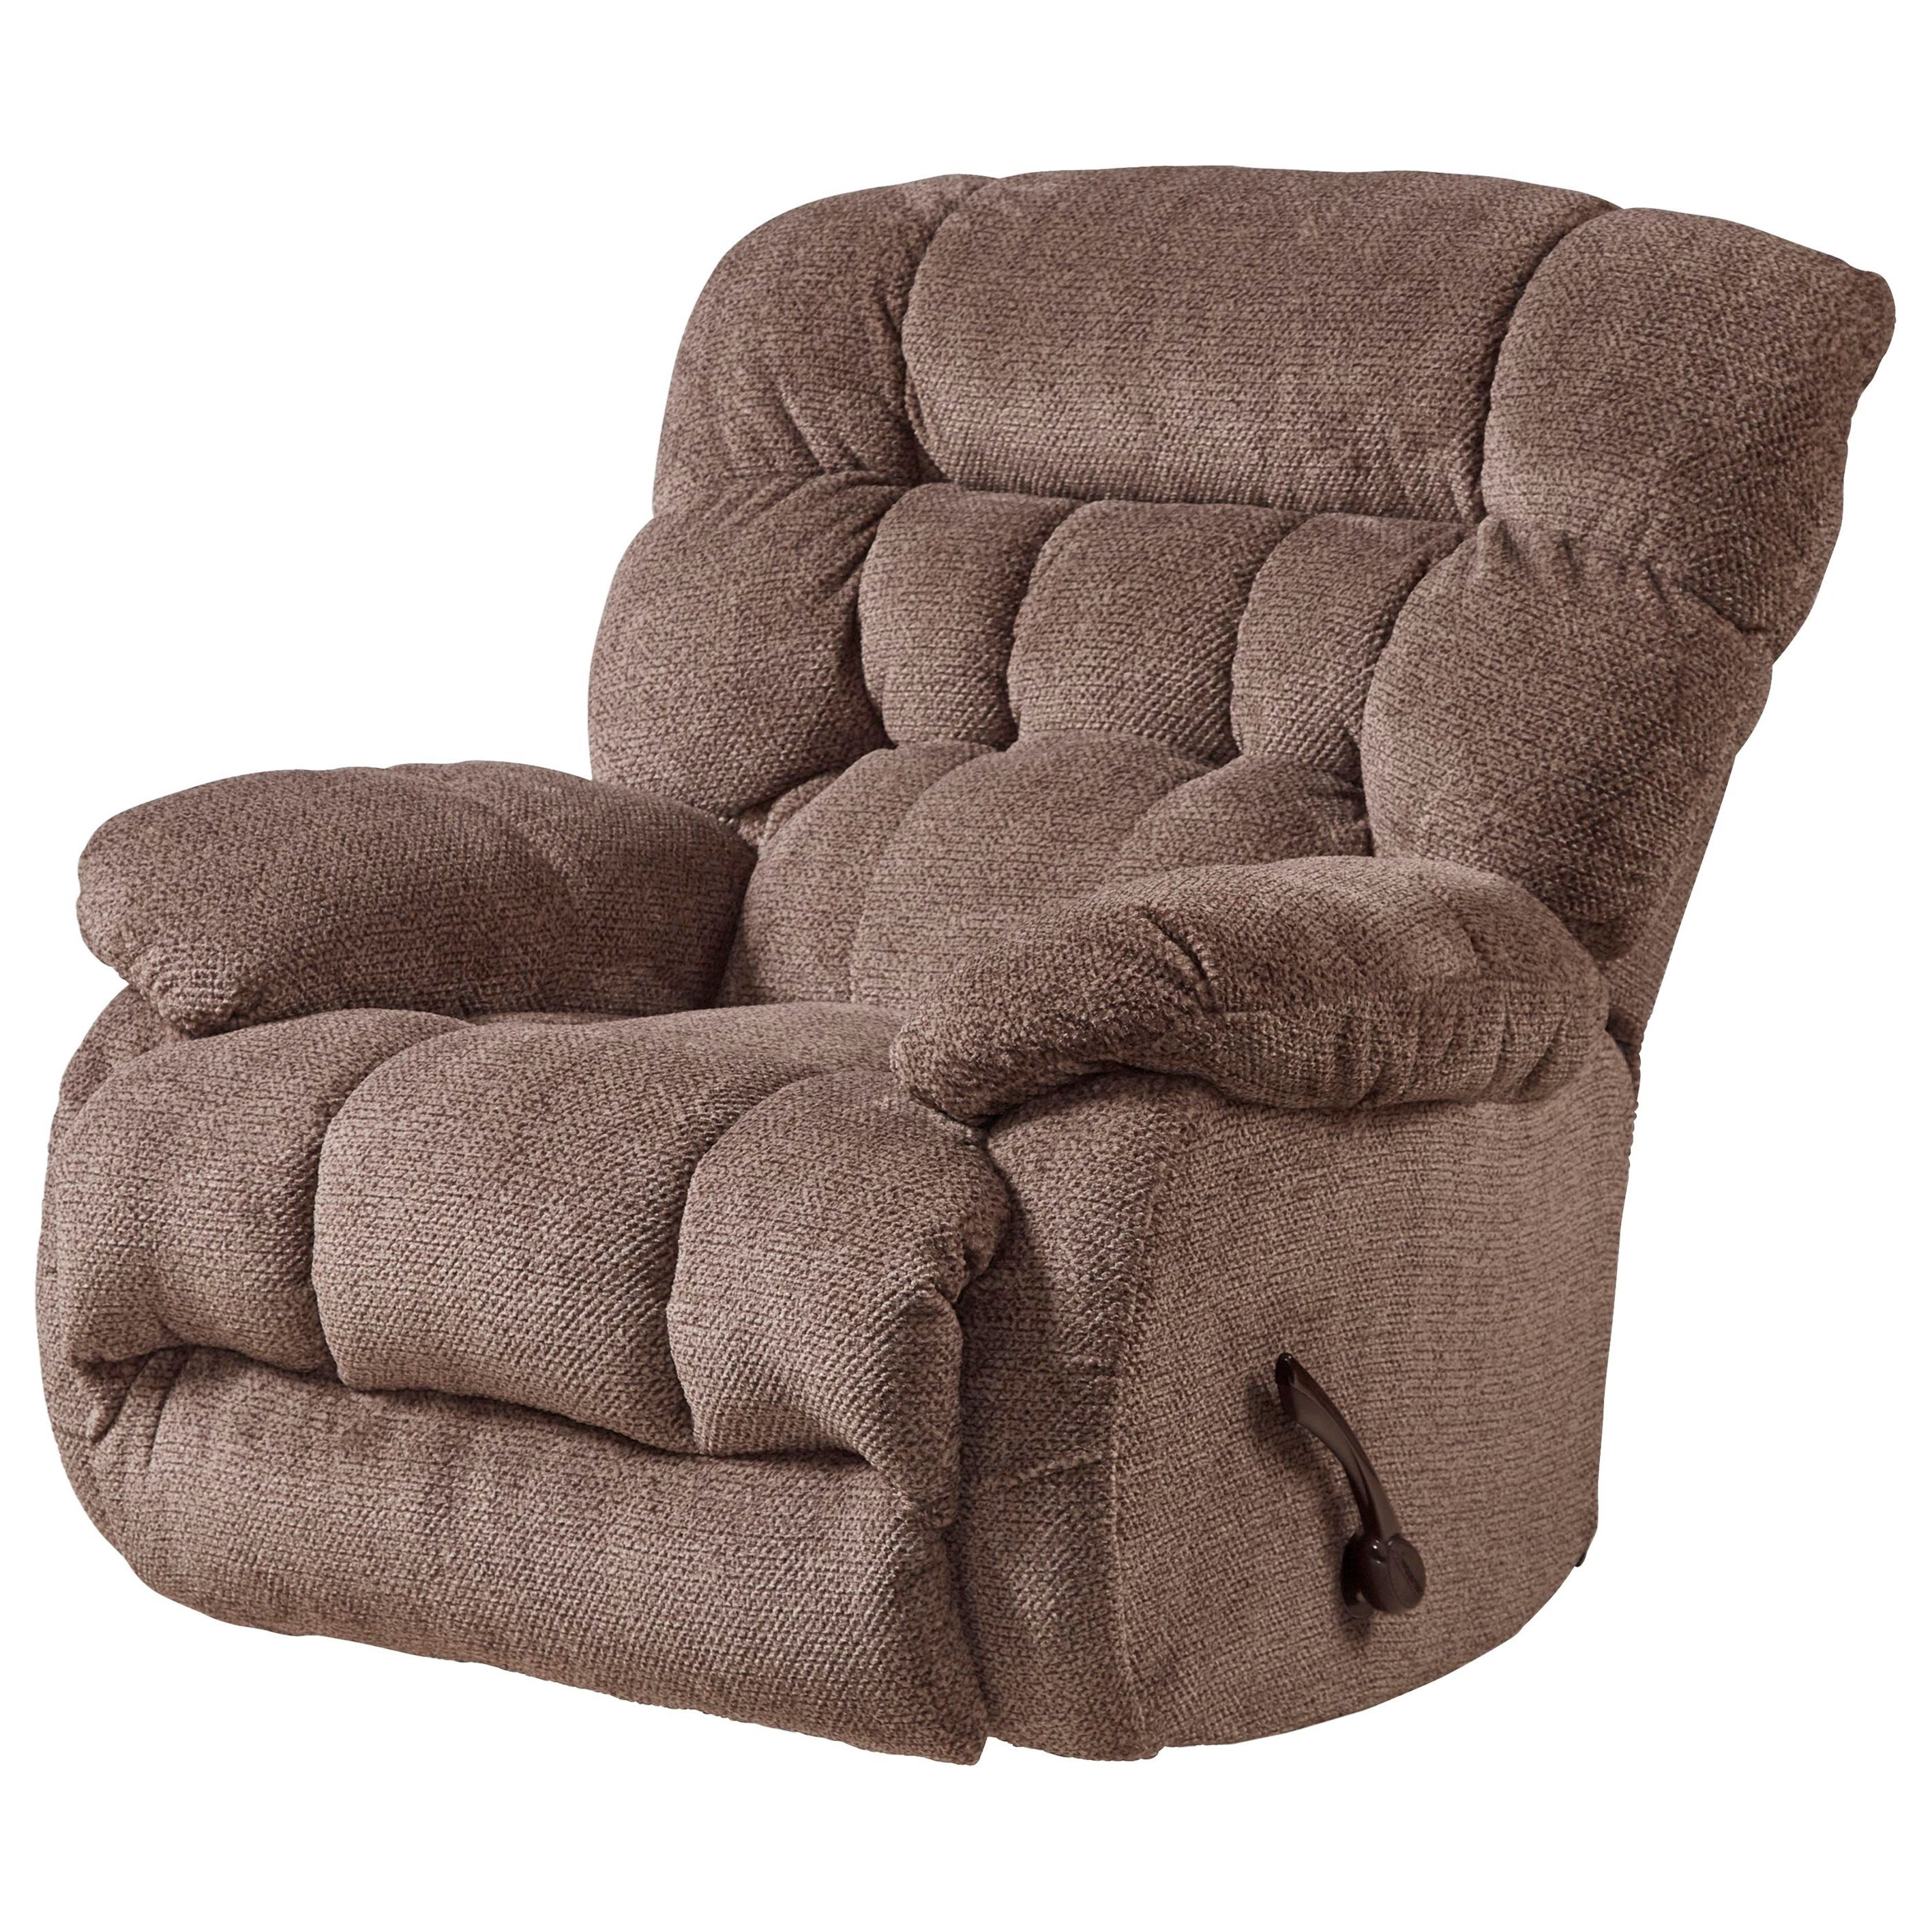 Motion Chairs And Recliners Daly Swivel Glider Reclinercatnapper At Furniture Fair – North Carolina Pertaining To Fashionable Gibson Swivel Cuddler Chairs (View 12 of 20)